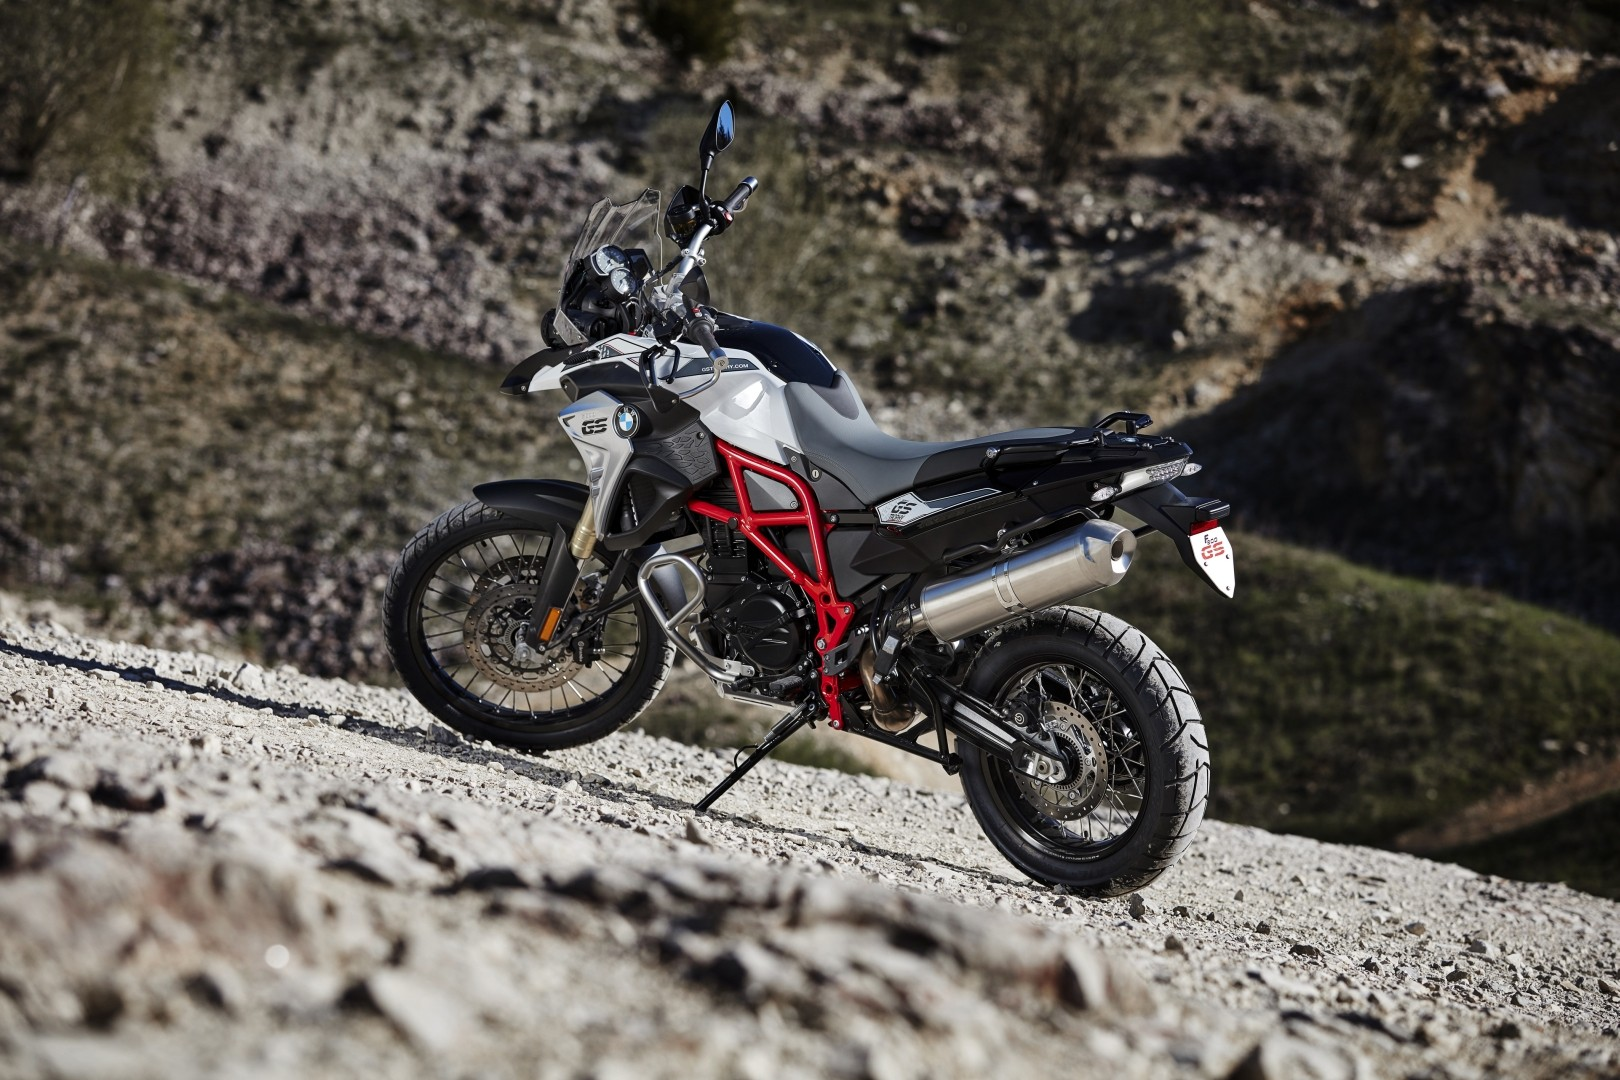 2015 2016 2017 Bmw R1200gs Adventure Review And Price 2015 2016 2017 ...